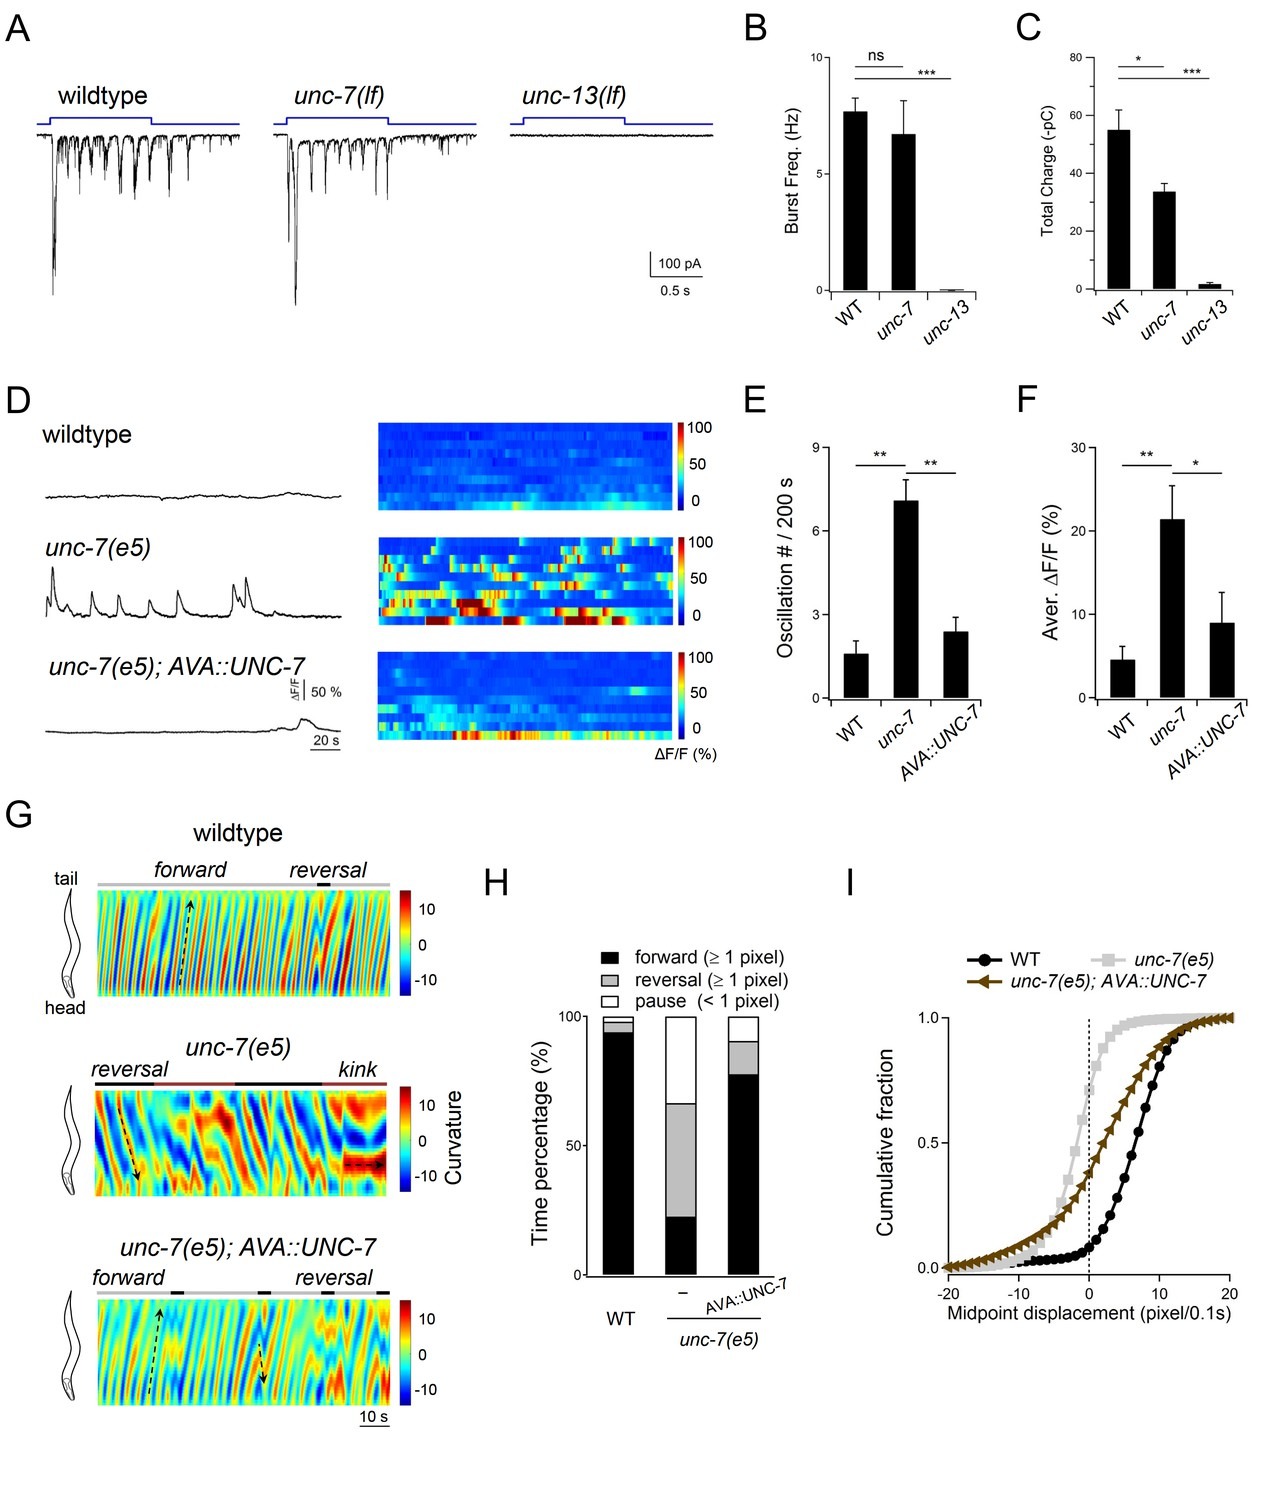 hight resolution of descending premotor ins ava exert dual modulation inhibition and potentiation of a mn s oscillatory activity to control the reversal motor state